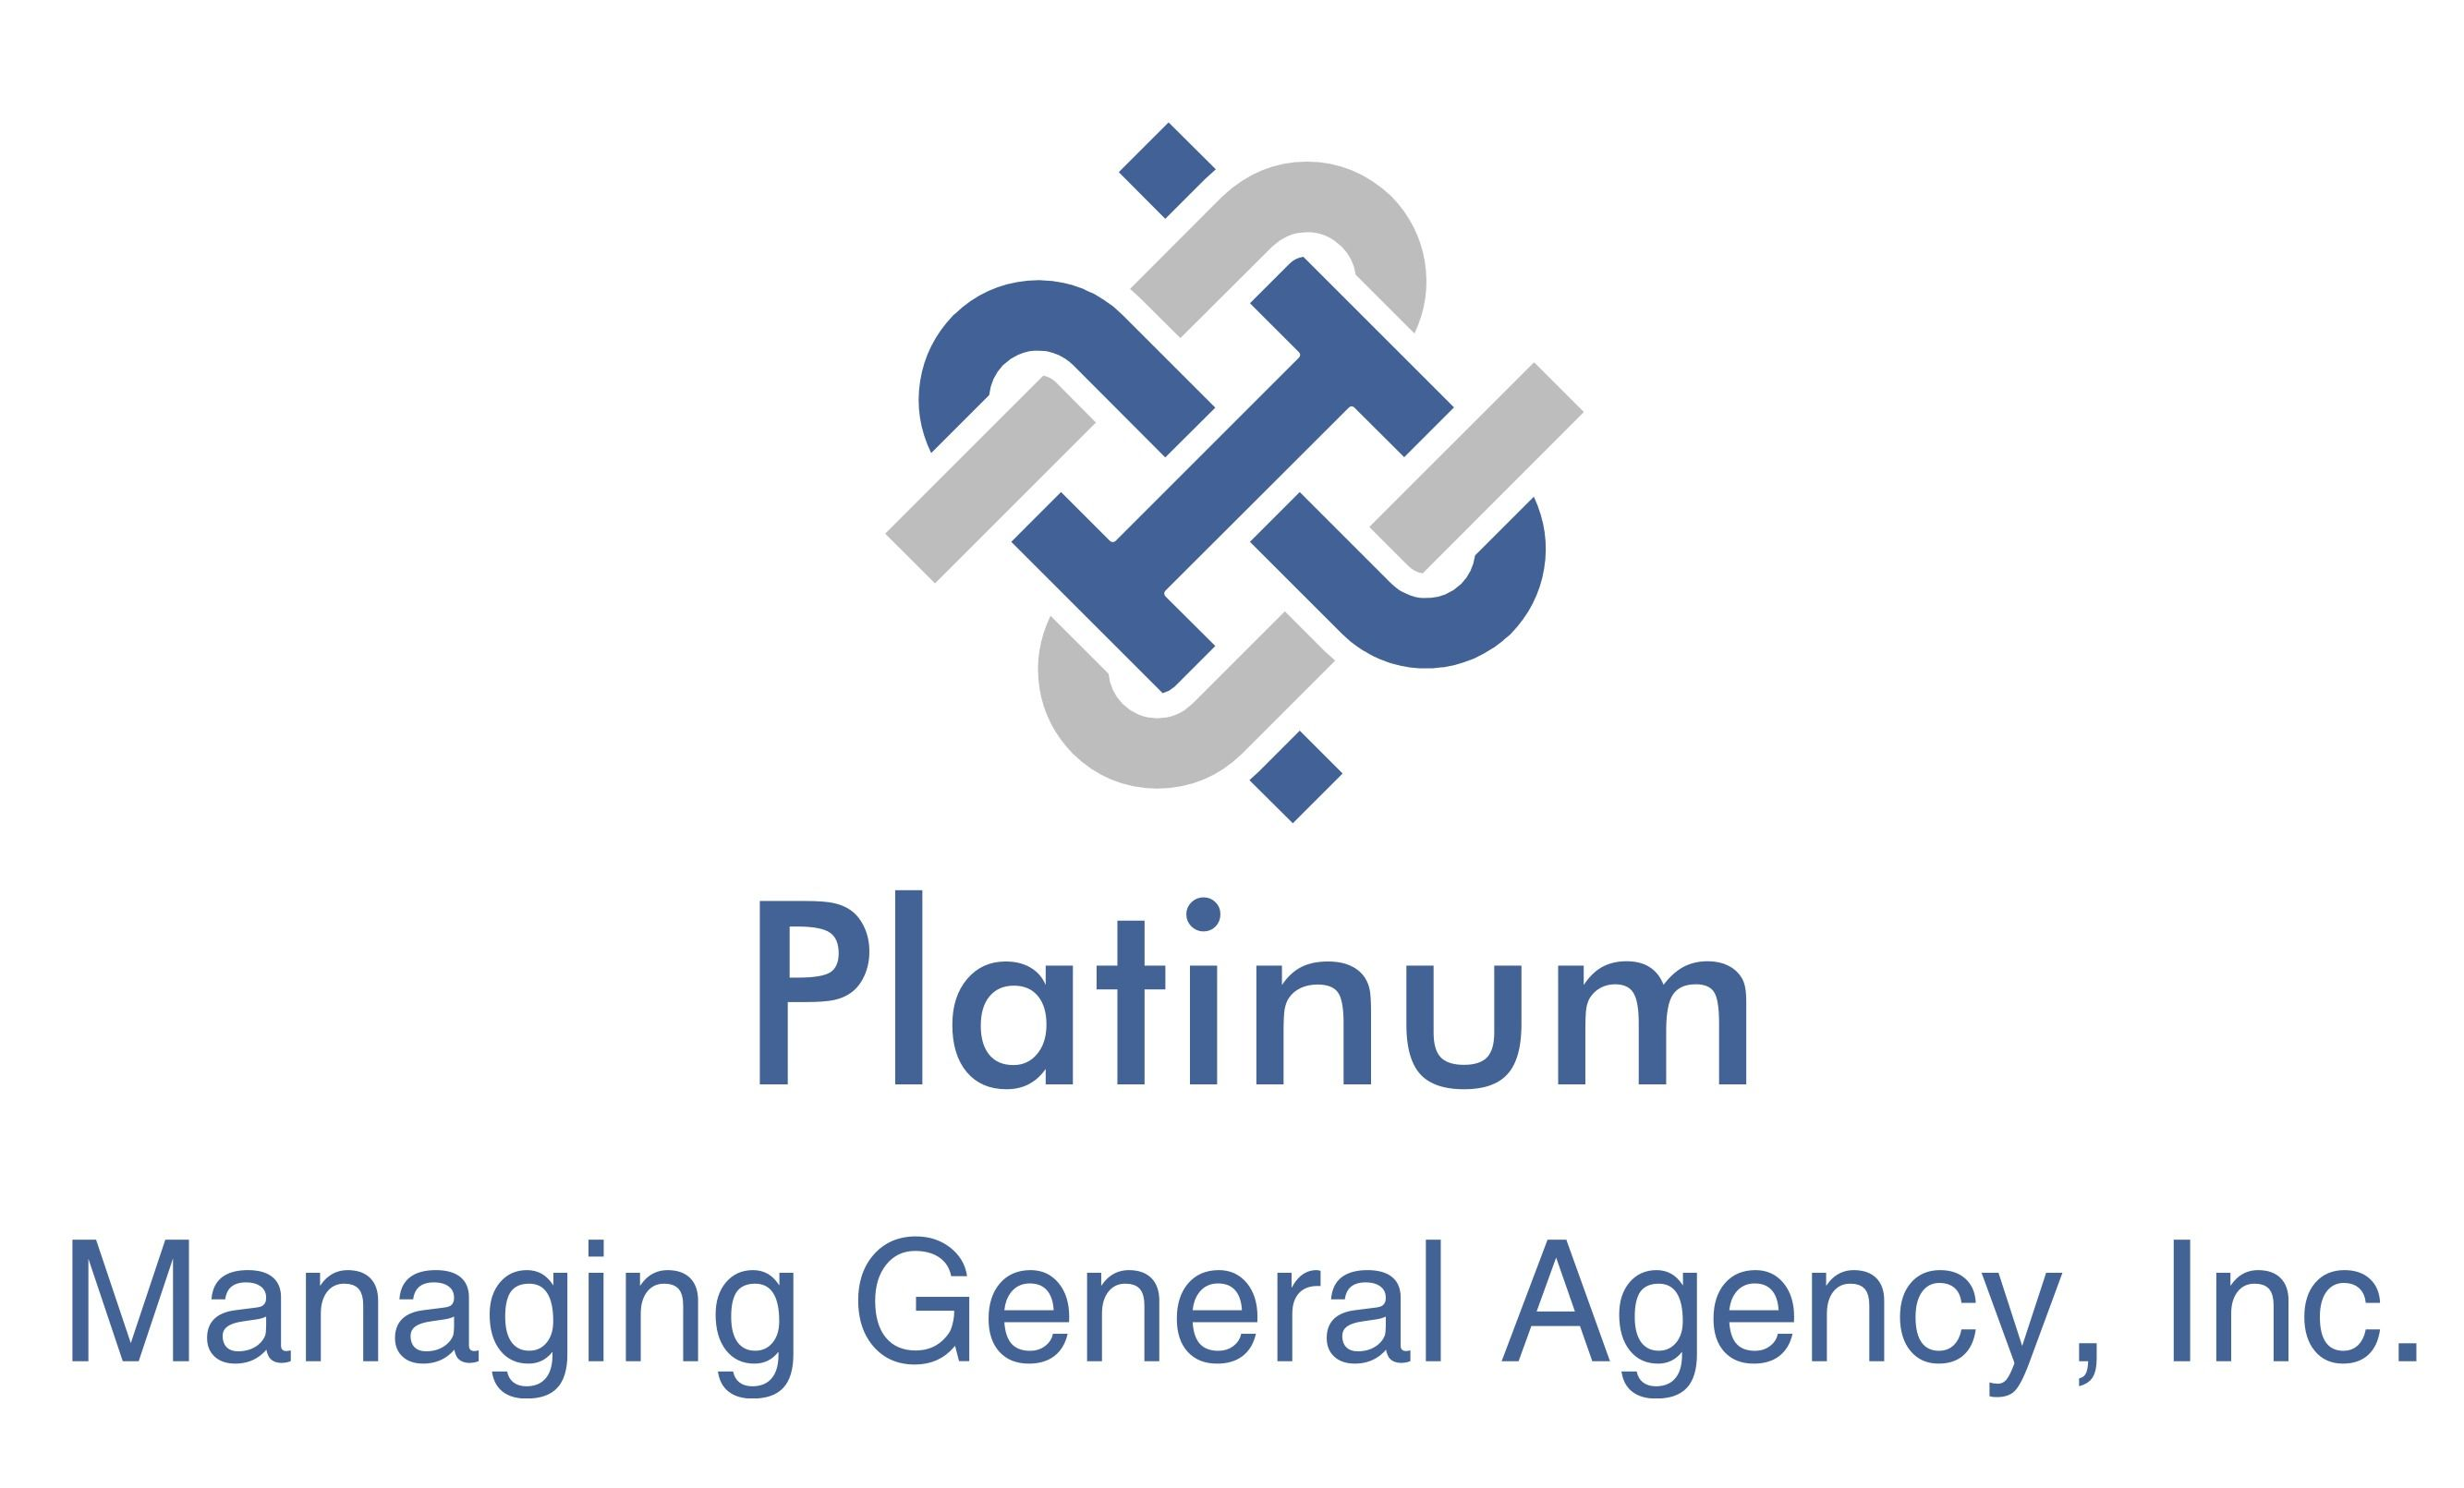 Platinum Managing General Agency, Inc